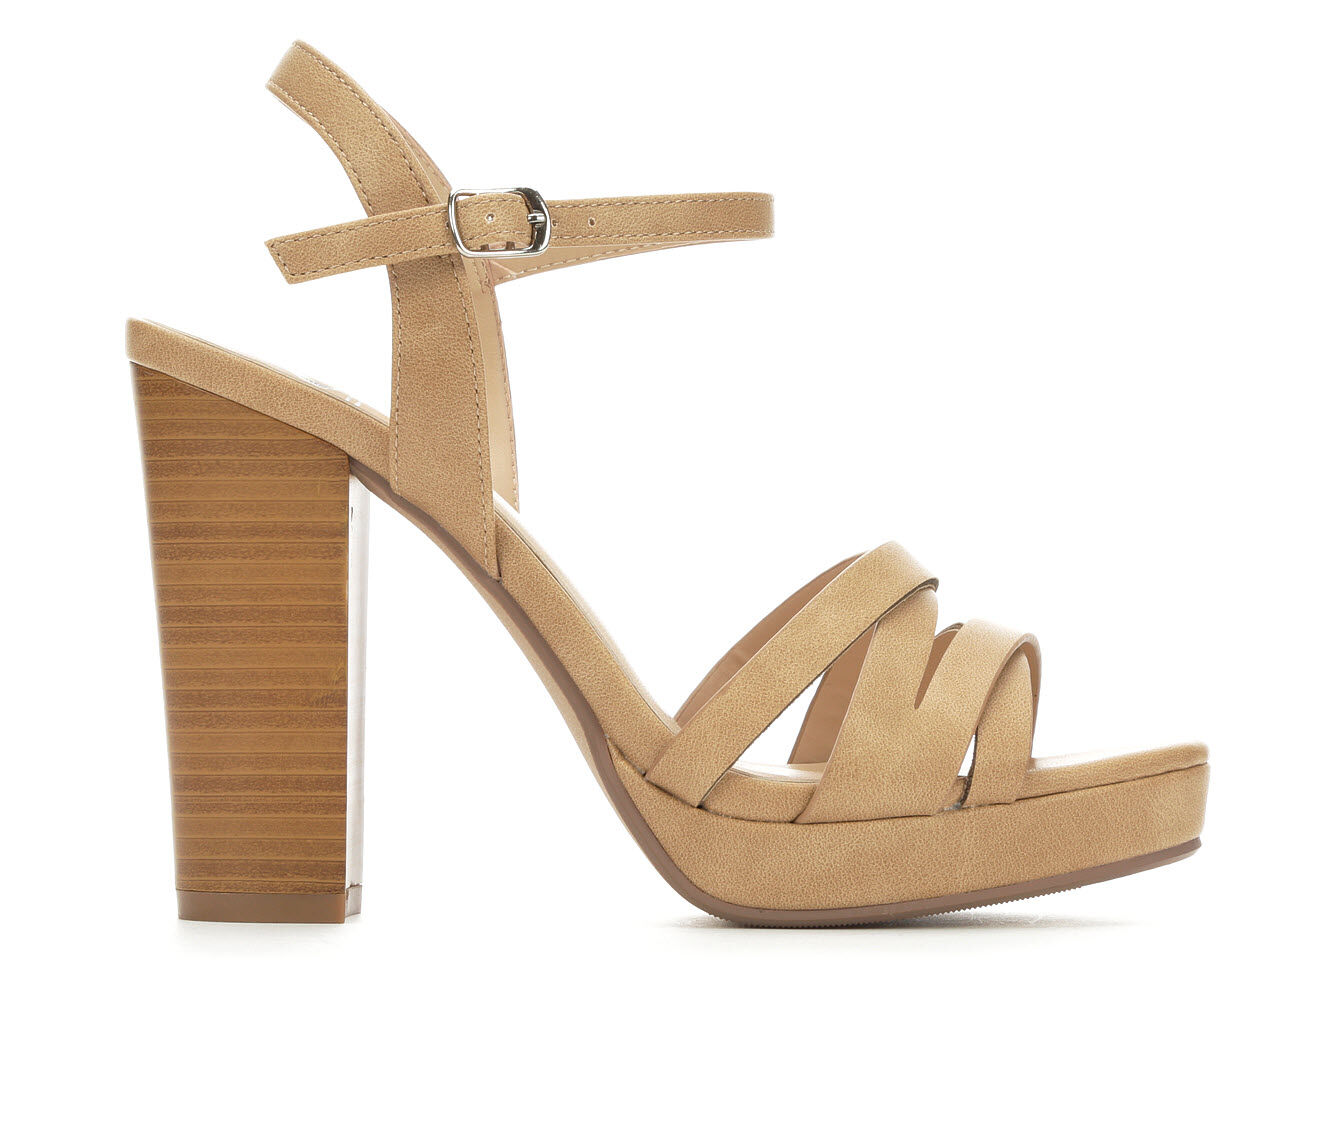 Women's Delicious Sunday Dress Sandals Beige PU